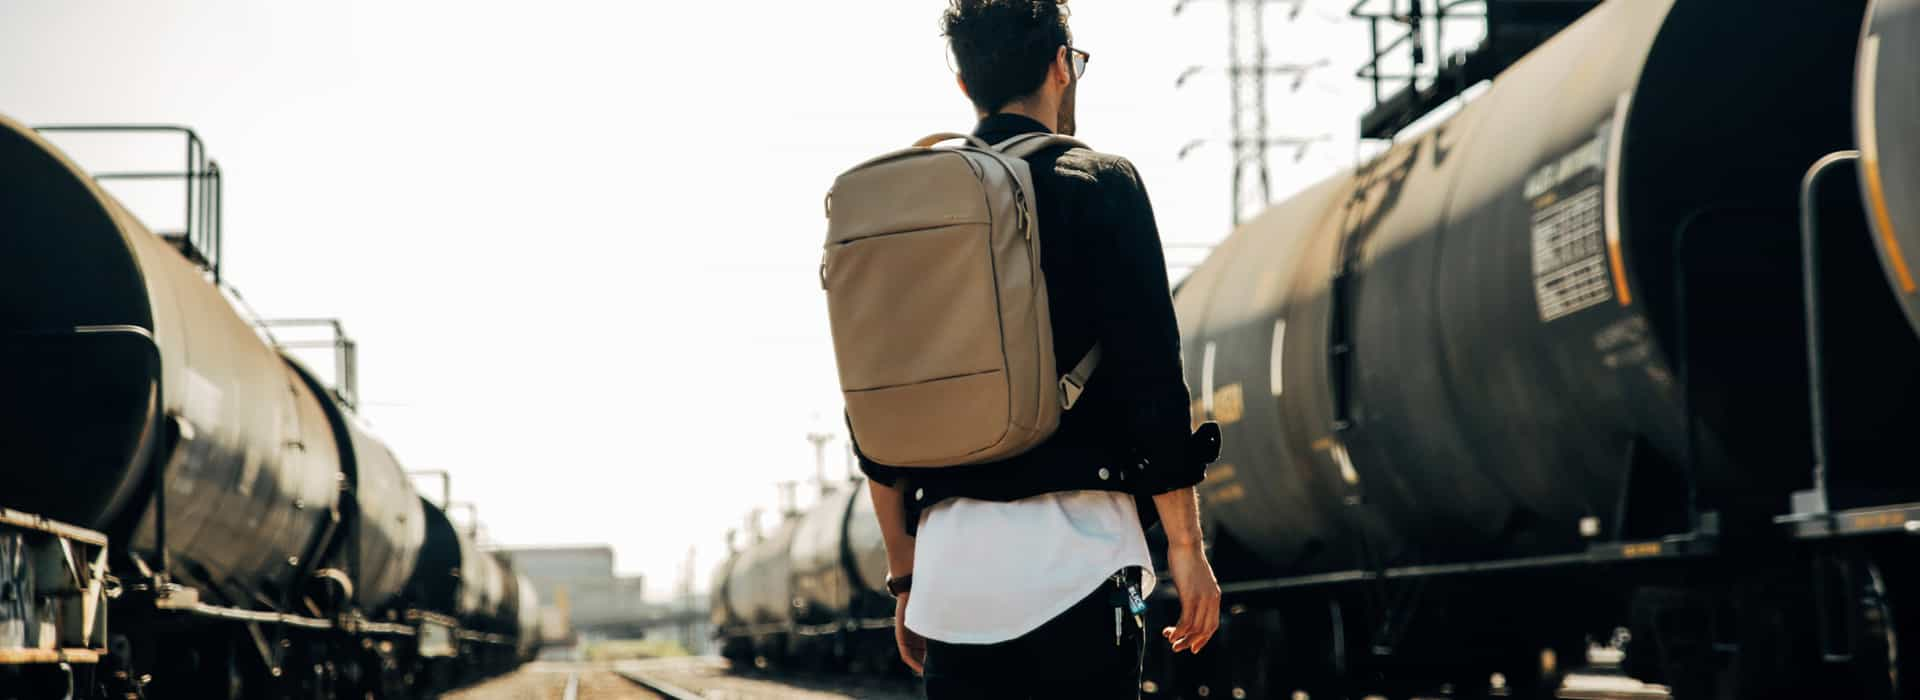 Best Rolling Backpacks In 2018 – Buying Guide for Consumers